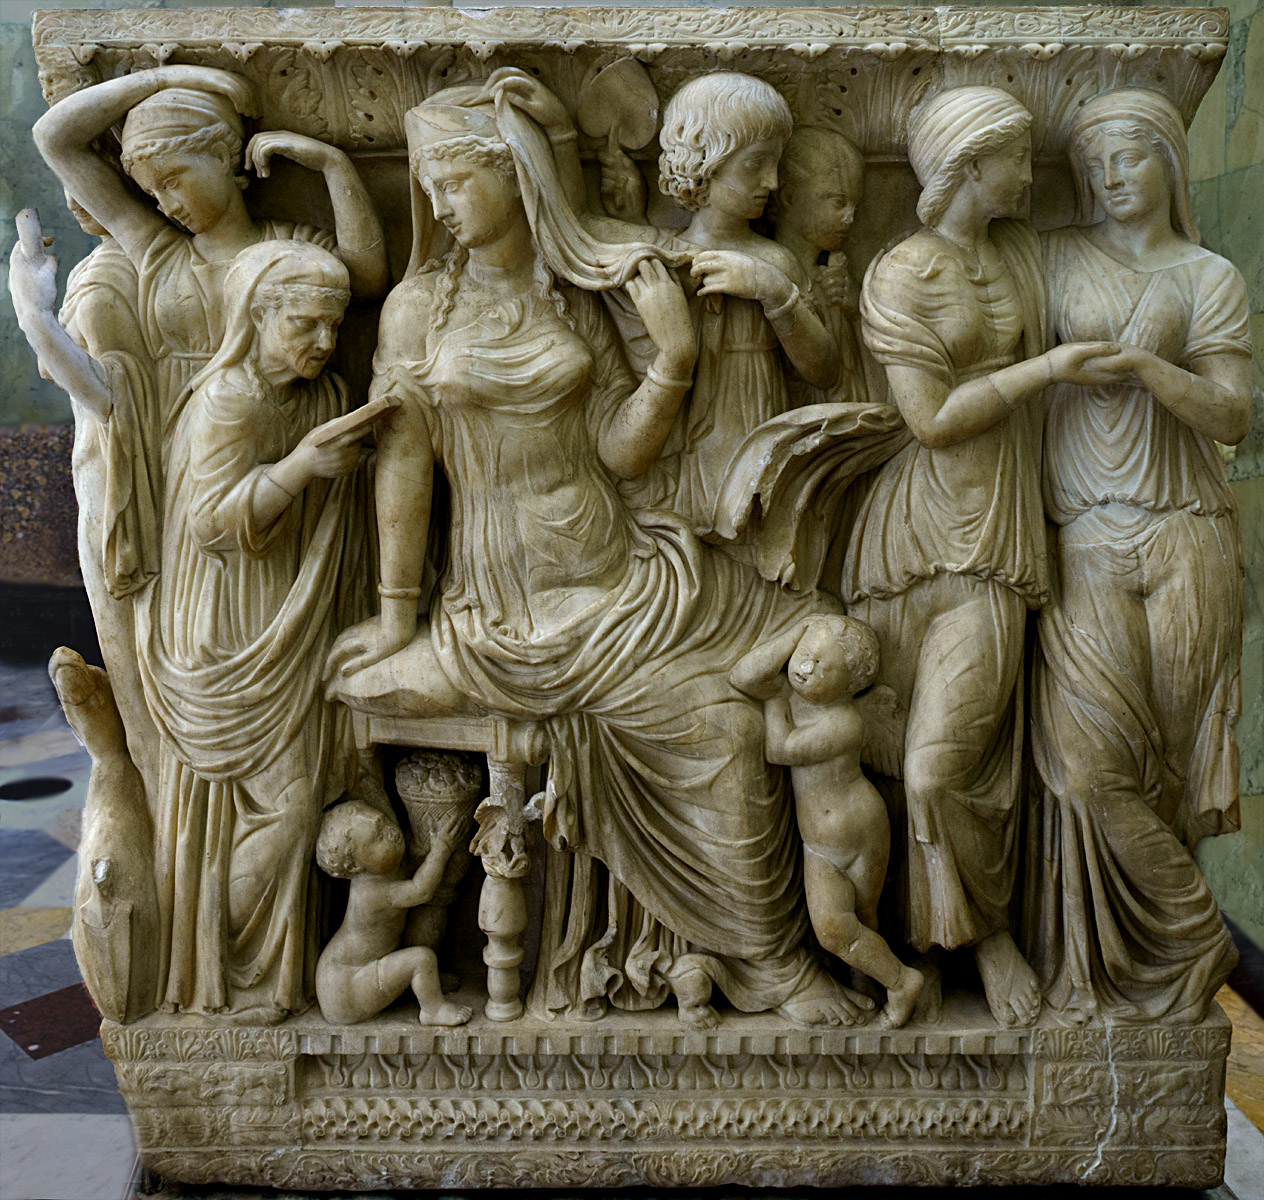 Sarcophagus with scenes of myth of Phaedra and Hippolytus. Right side panel: Phaedra, the wife of Theseus and stepmother of Hippolitus hands over a declaration of love for her stepson to her wet mother. Marble. Late 2nd cent. CE. Inv. No. A 432. Saint Petersburg, The State Hermitage Museum